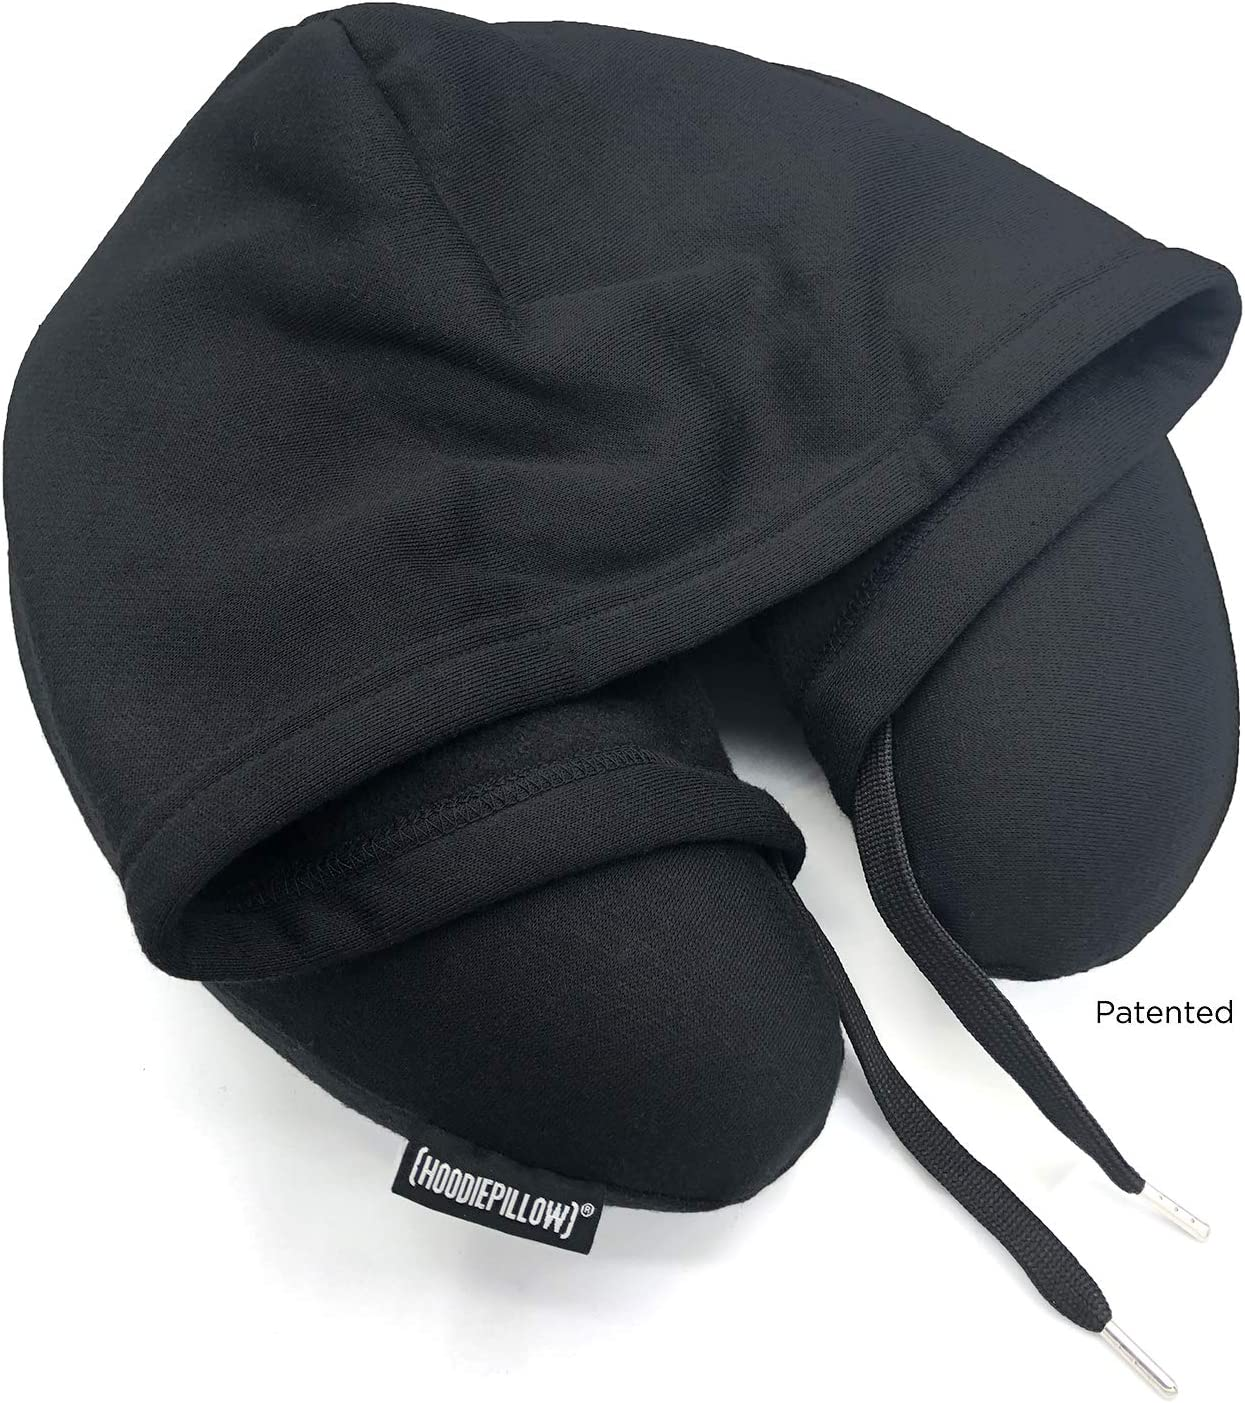 HoodiePillow Brand Memory Foam Hooded Travel Pillow - Black